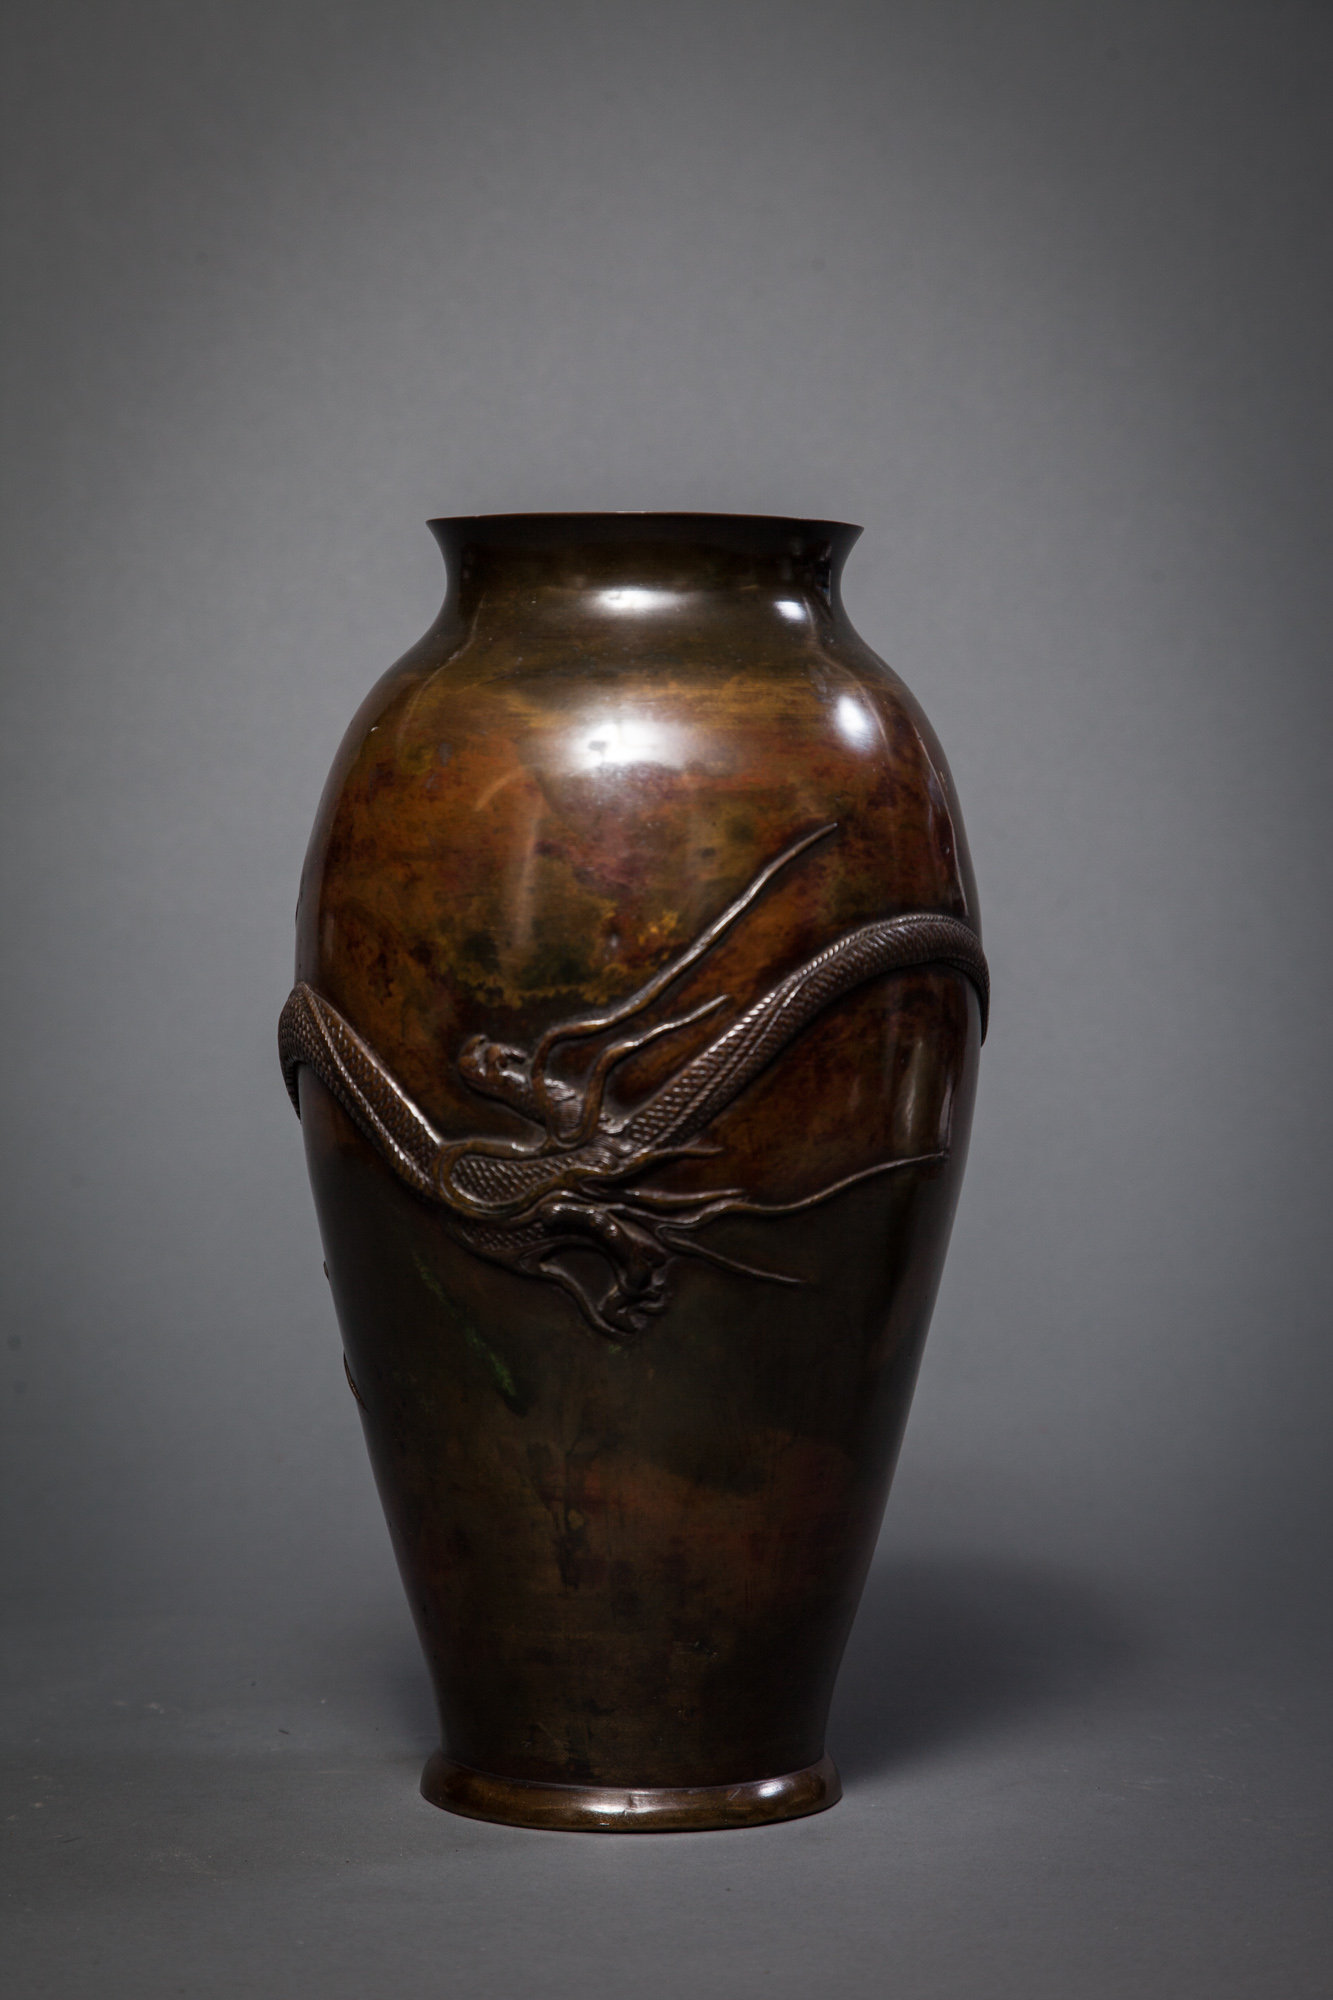 Japanese 19th Century Bronze Vase with Raised Dragon Design